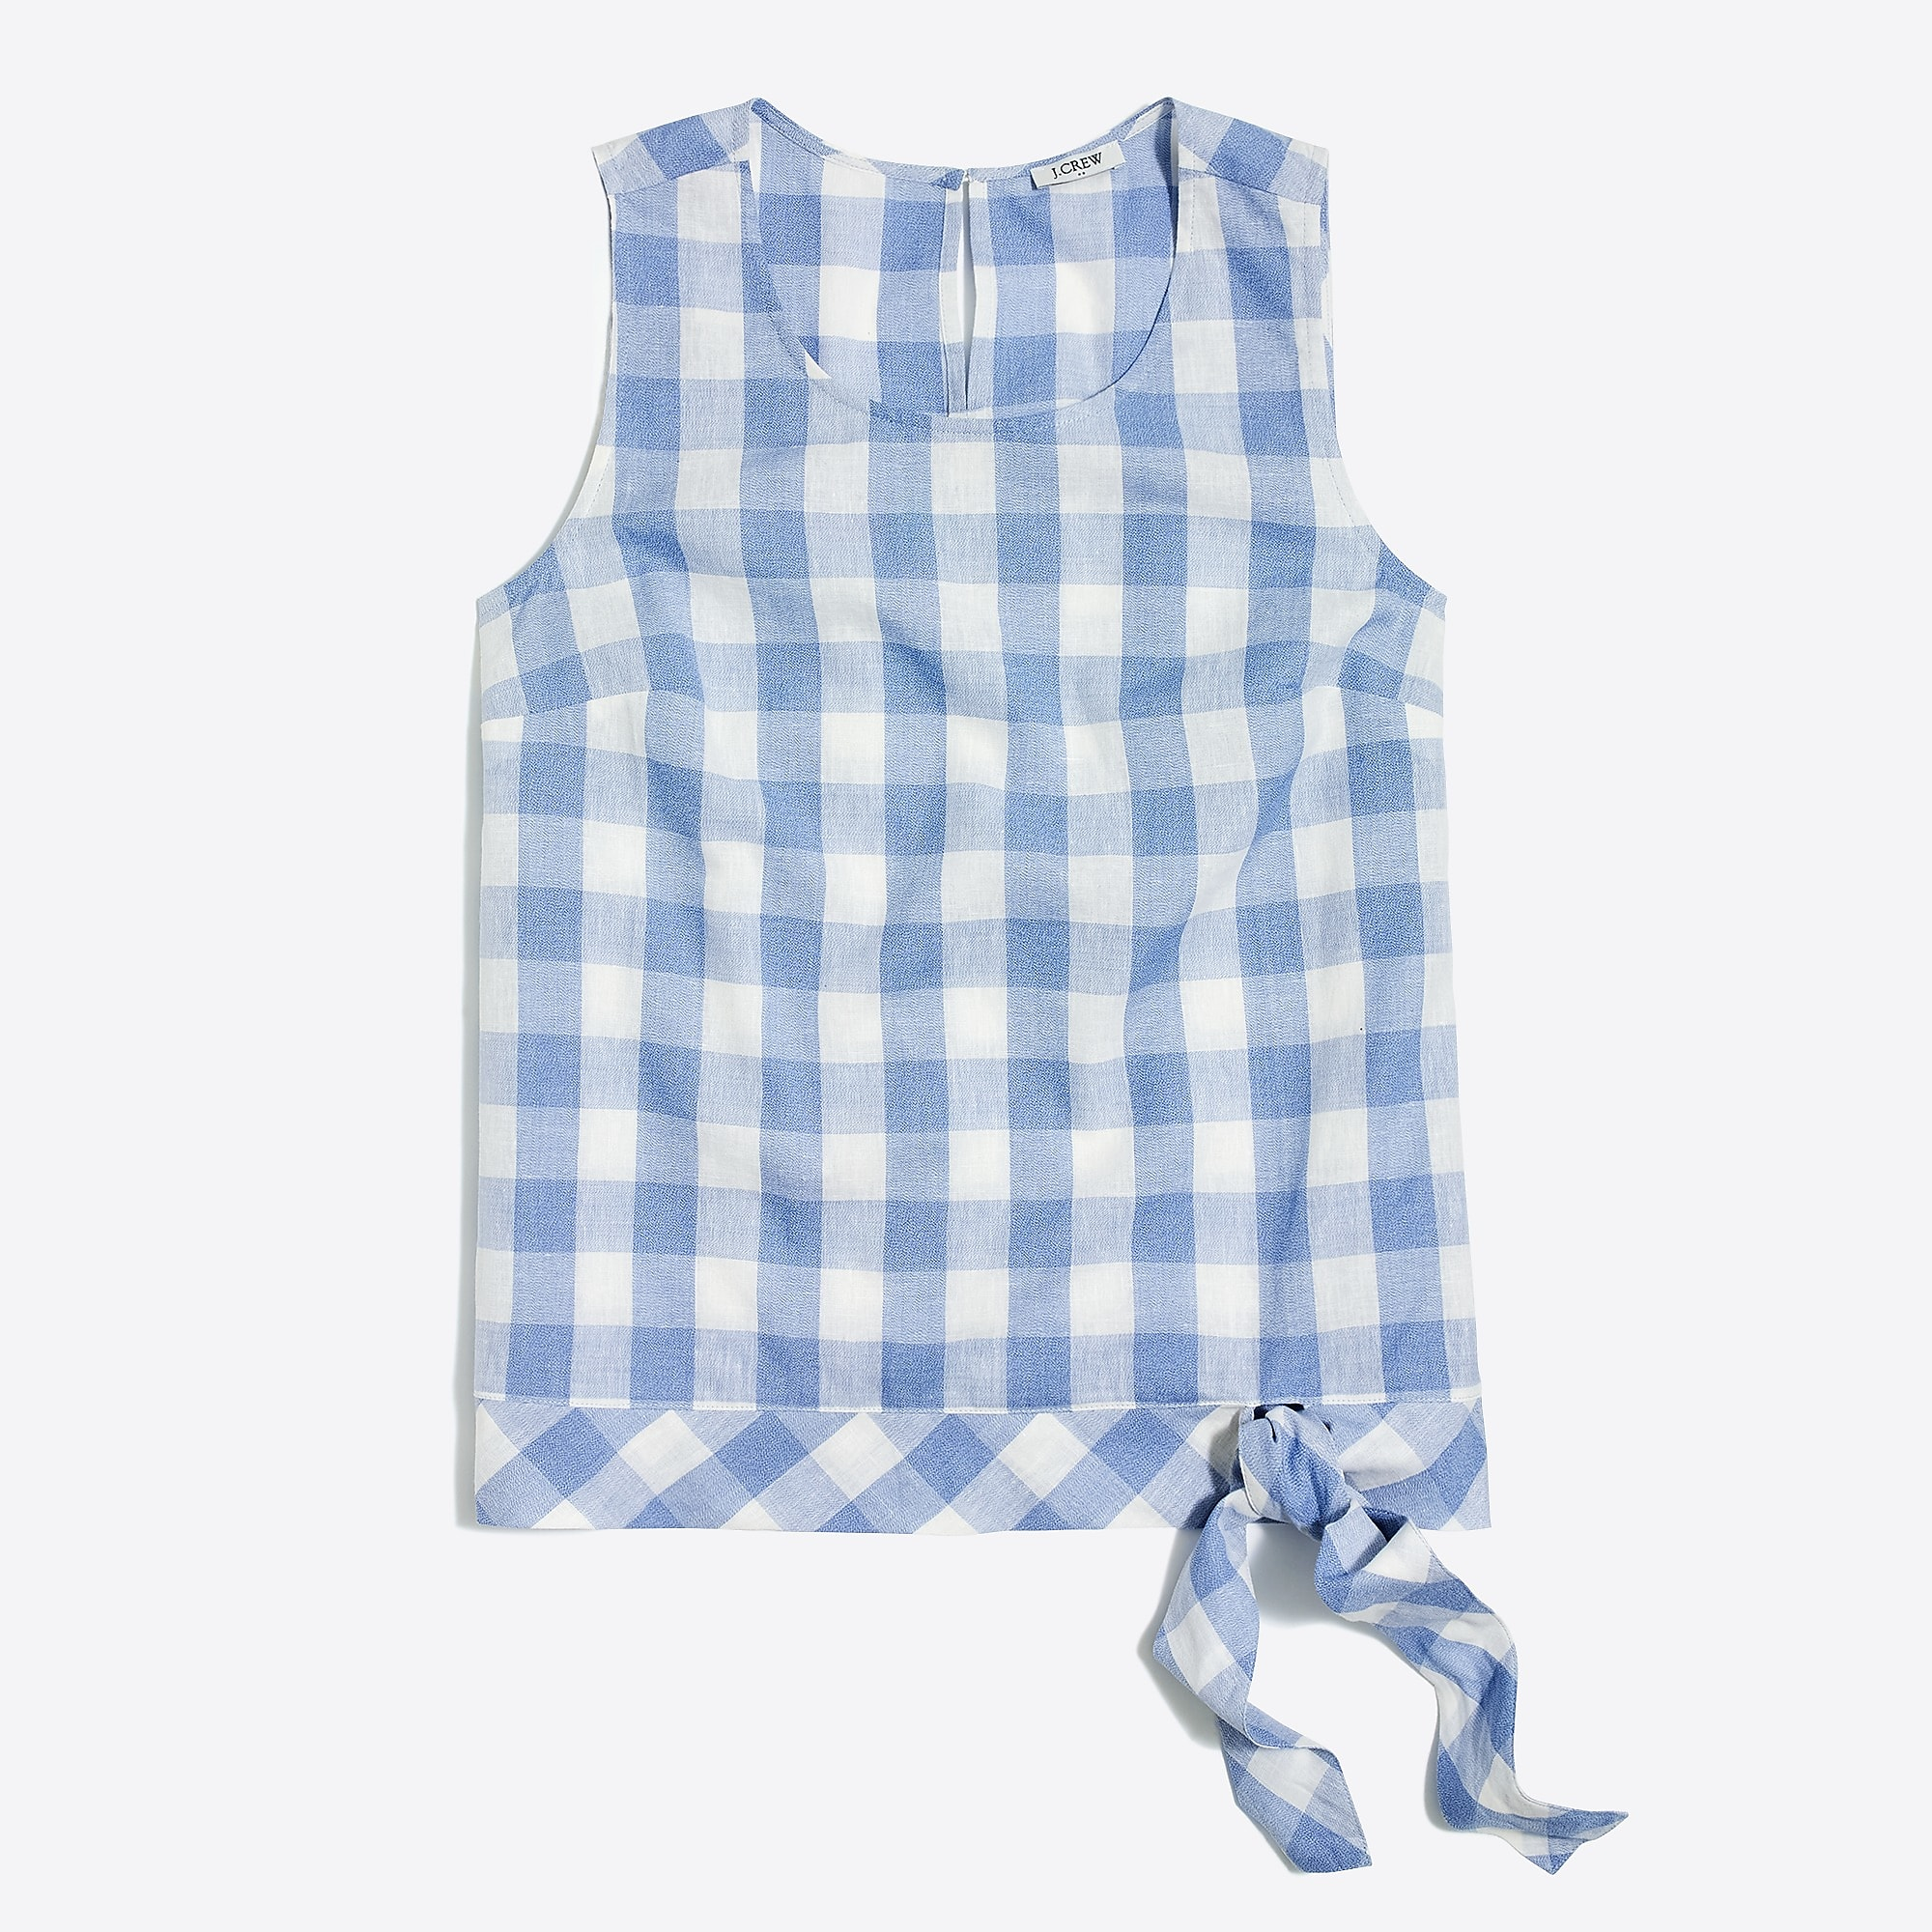 Blue Gingham Tank Top with Bow Tie